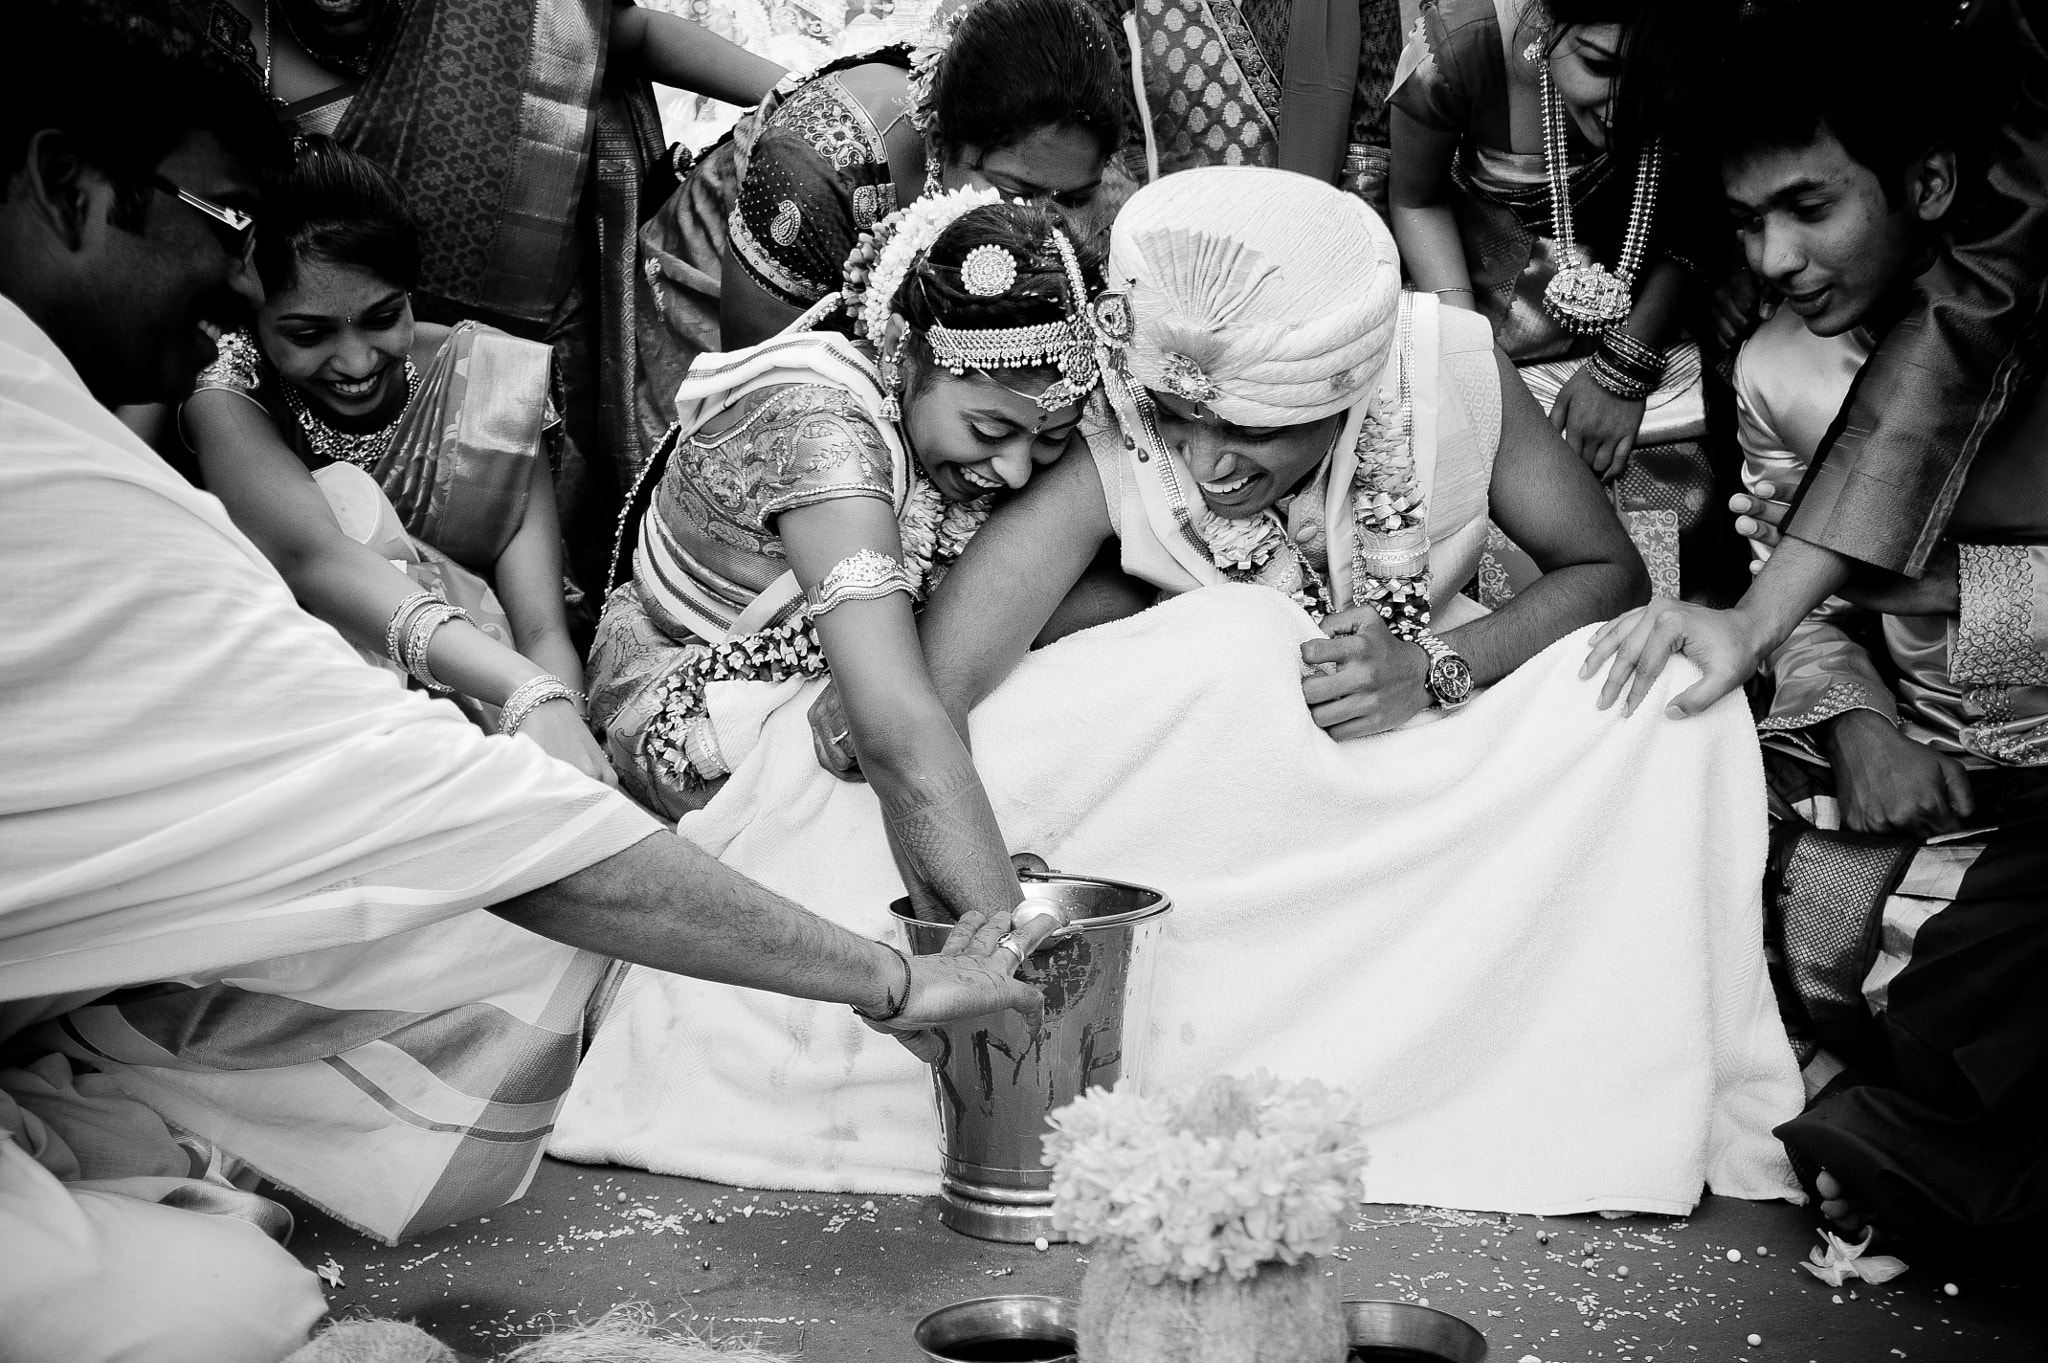 Photograph Games after the wedding  by Mayur Channagere on 500px